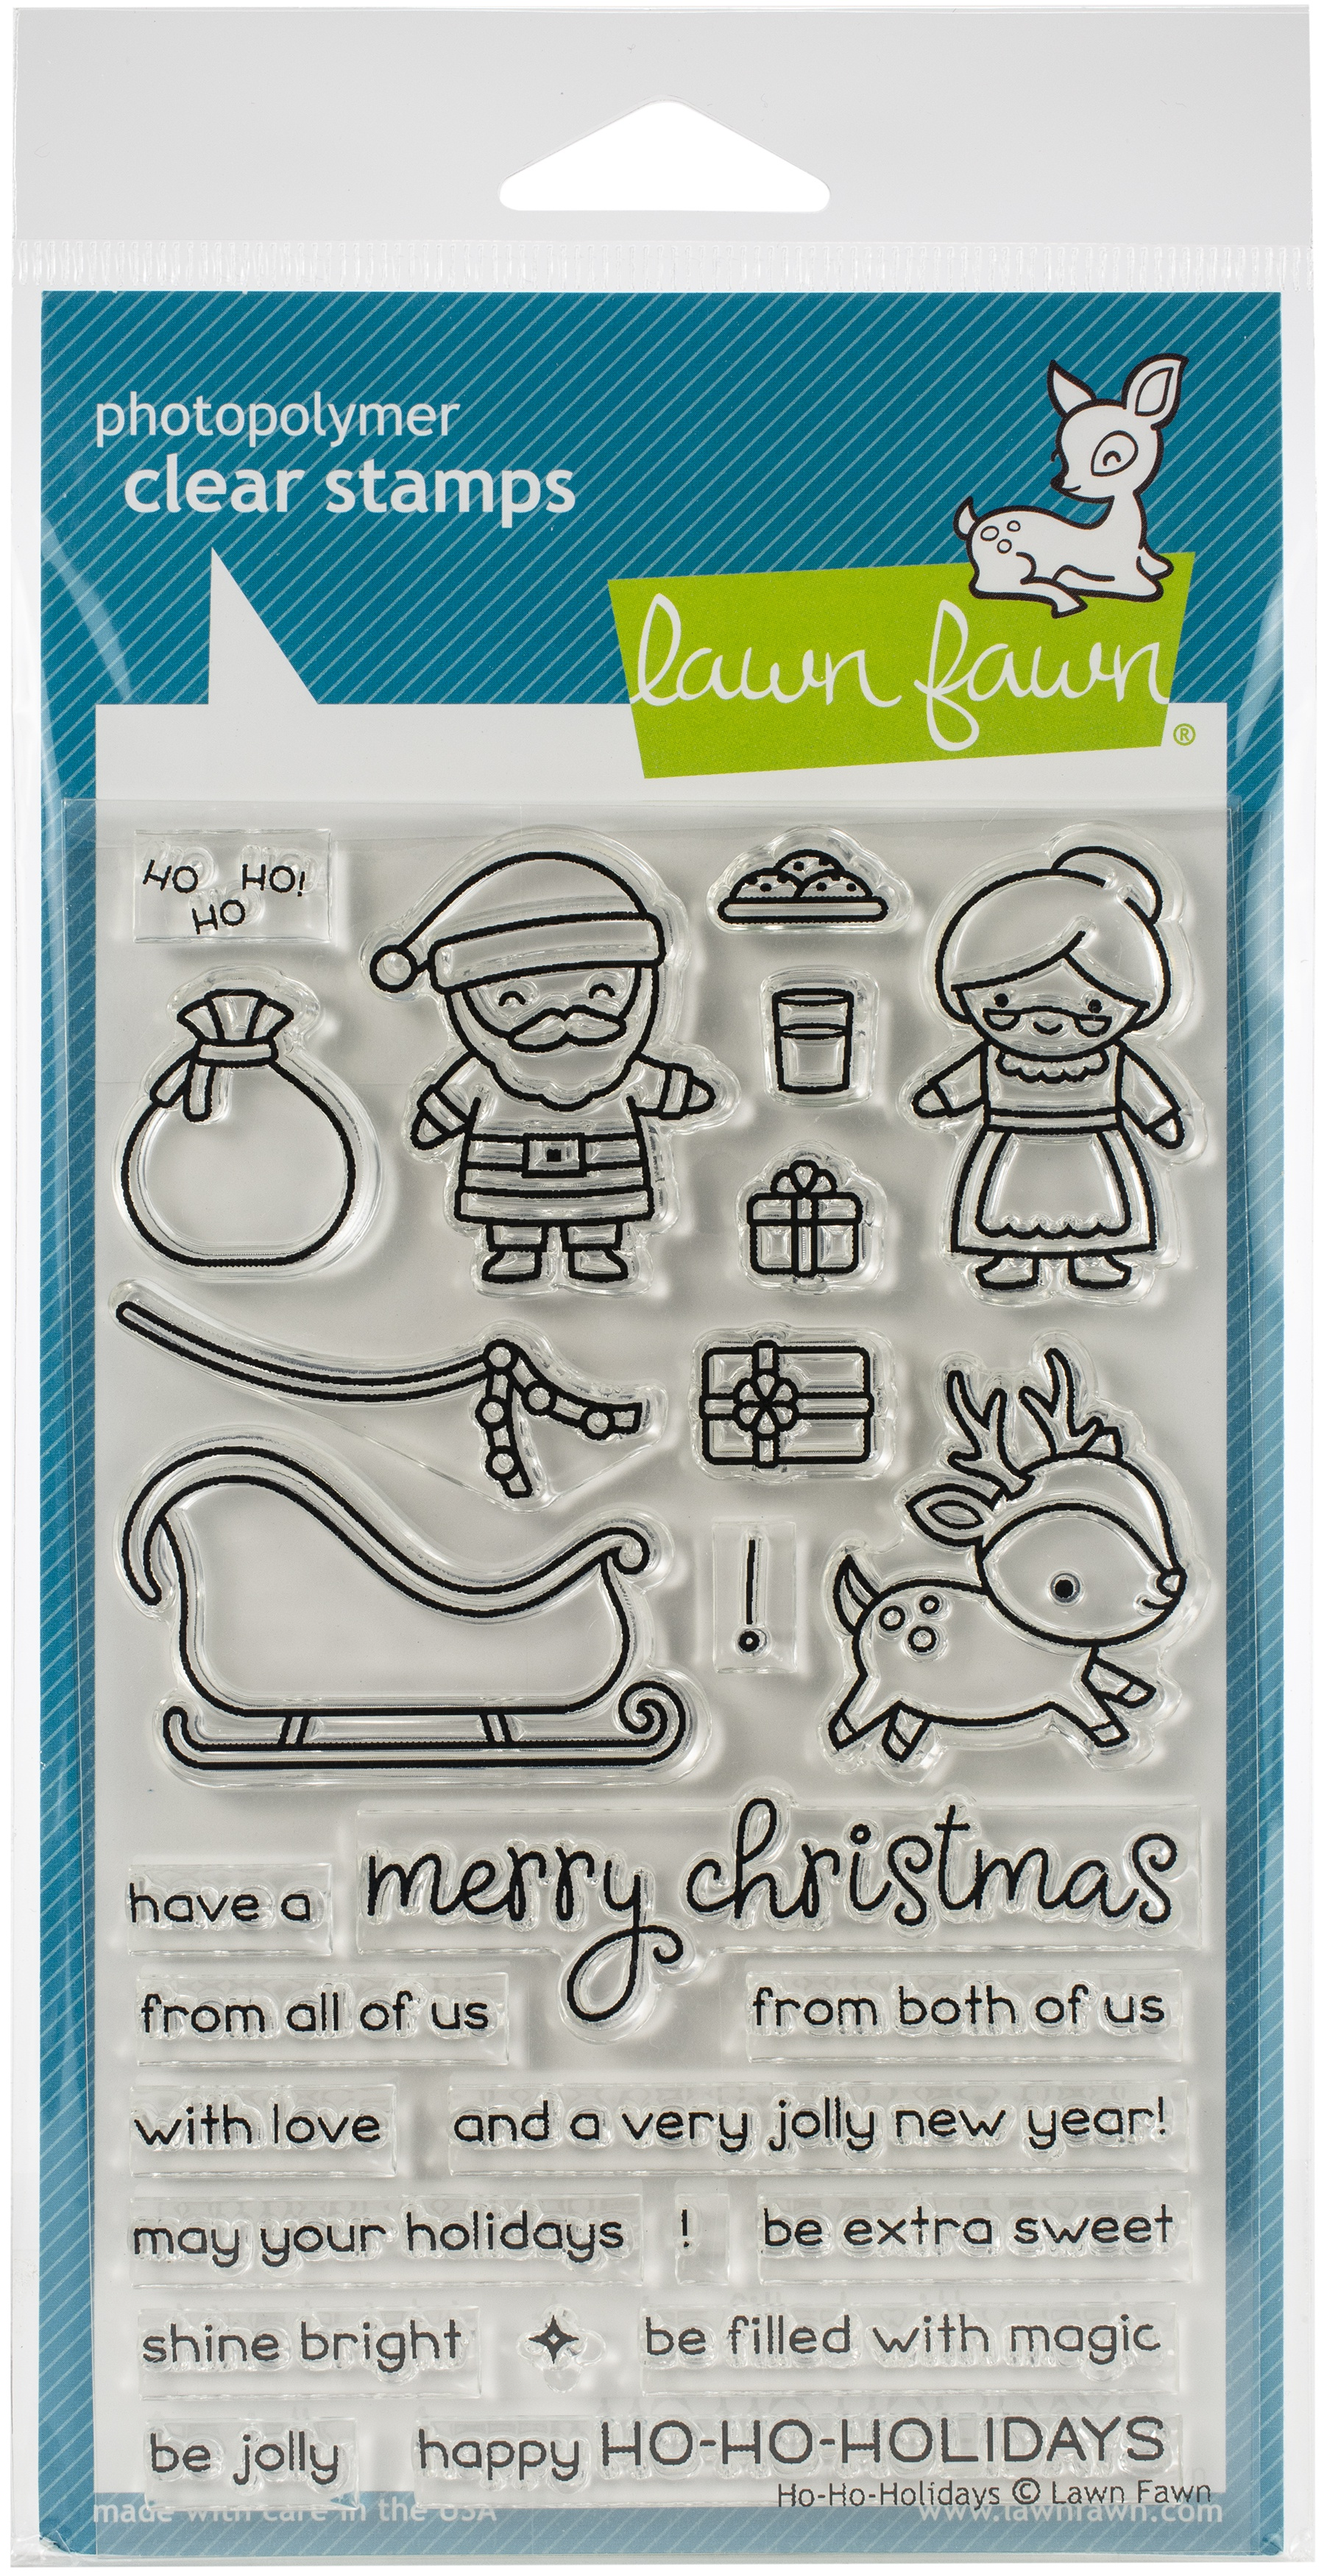 Lawn Fawn Clear Stamps 4X6-Ho-Ho-Holidays